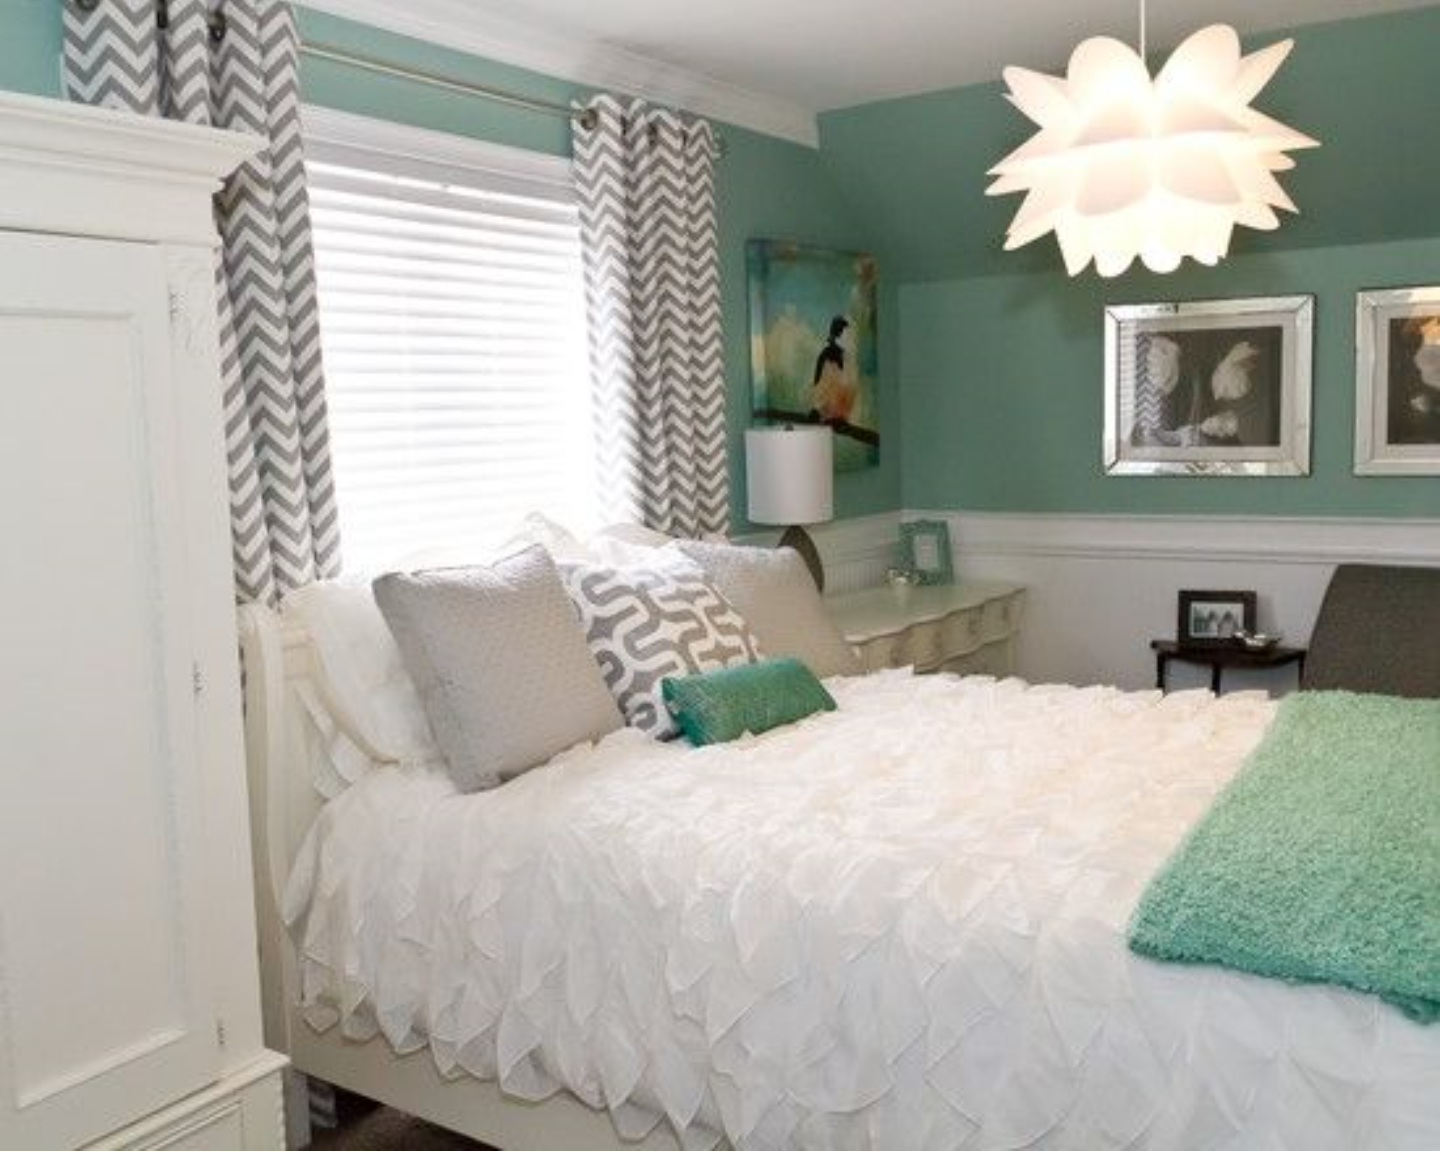 Blue and green bedrooms for girls - Grey And Mint Green Bedroom